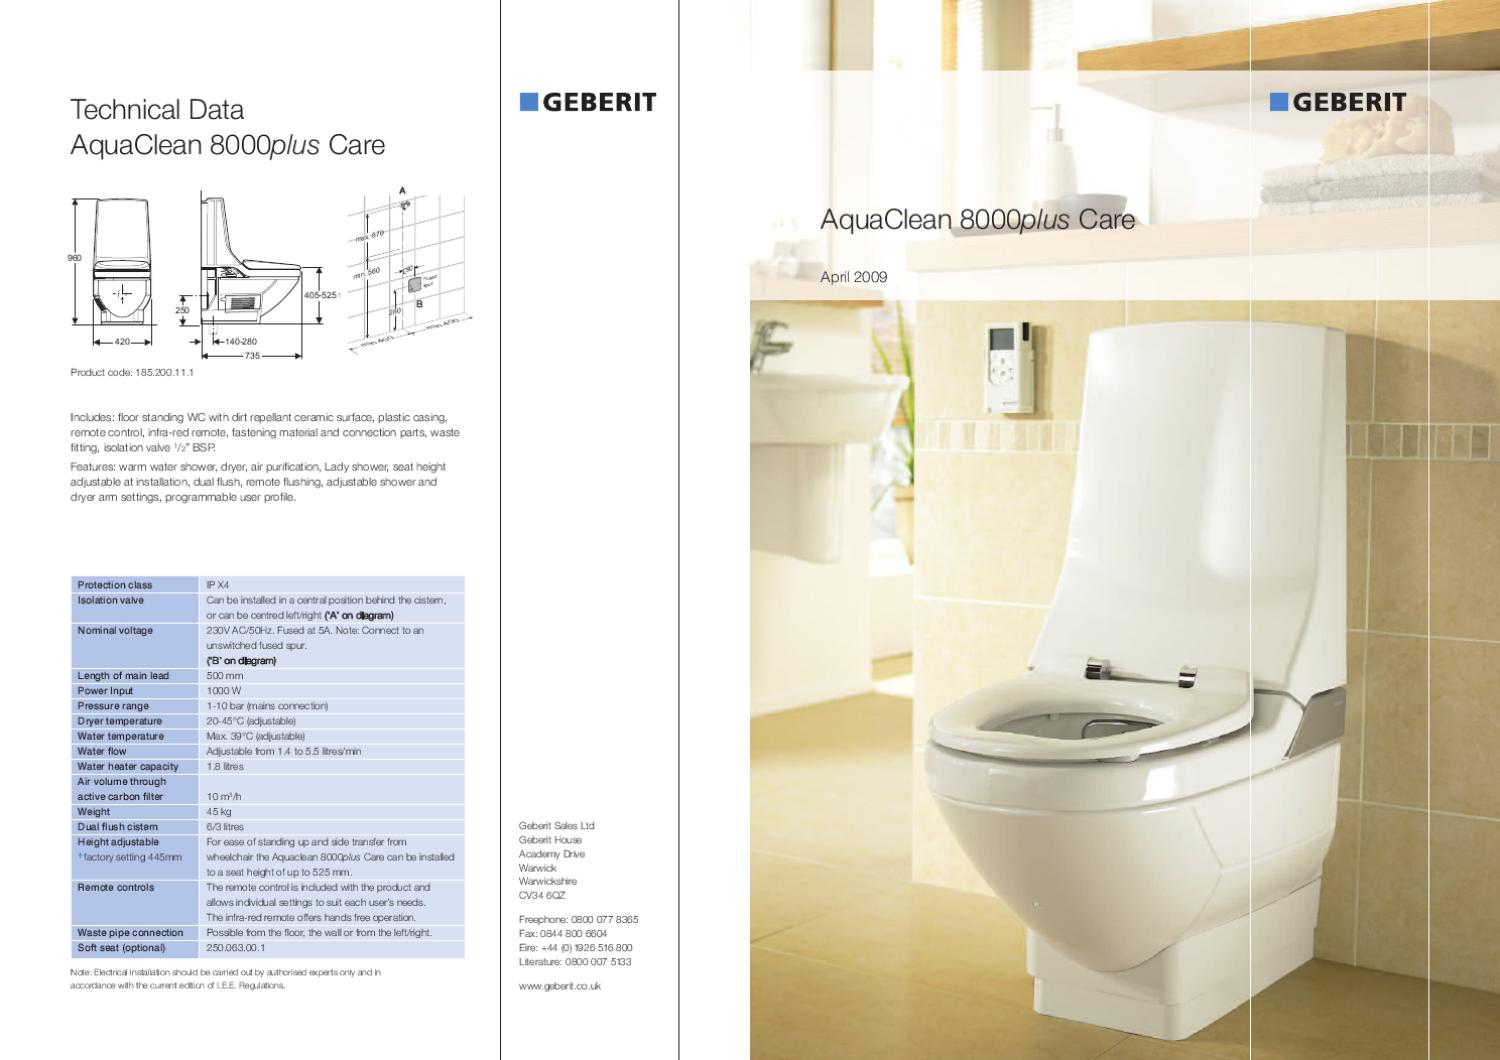 Aquaclean 8000plus Geberit Aquaclean 8000 Plus Care Brochure By Abacus Healthcare Issuu